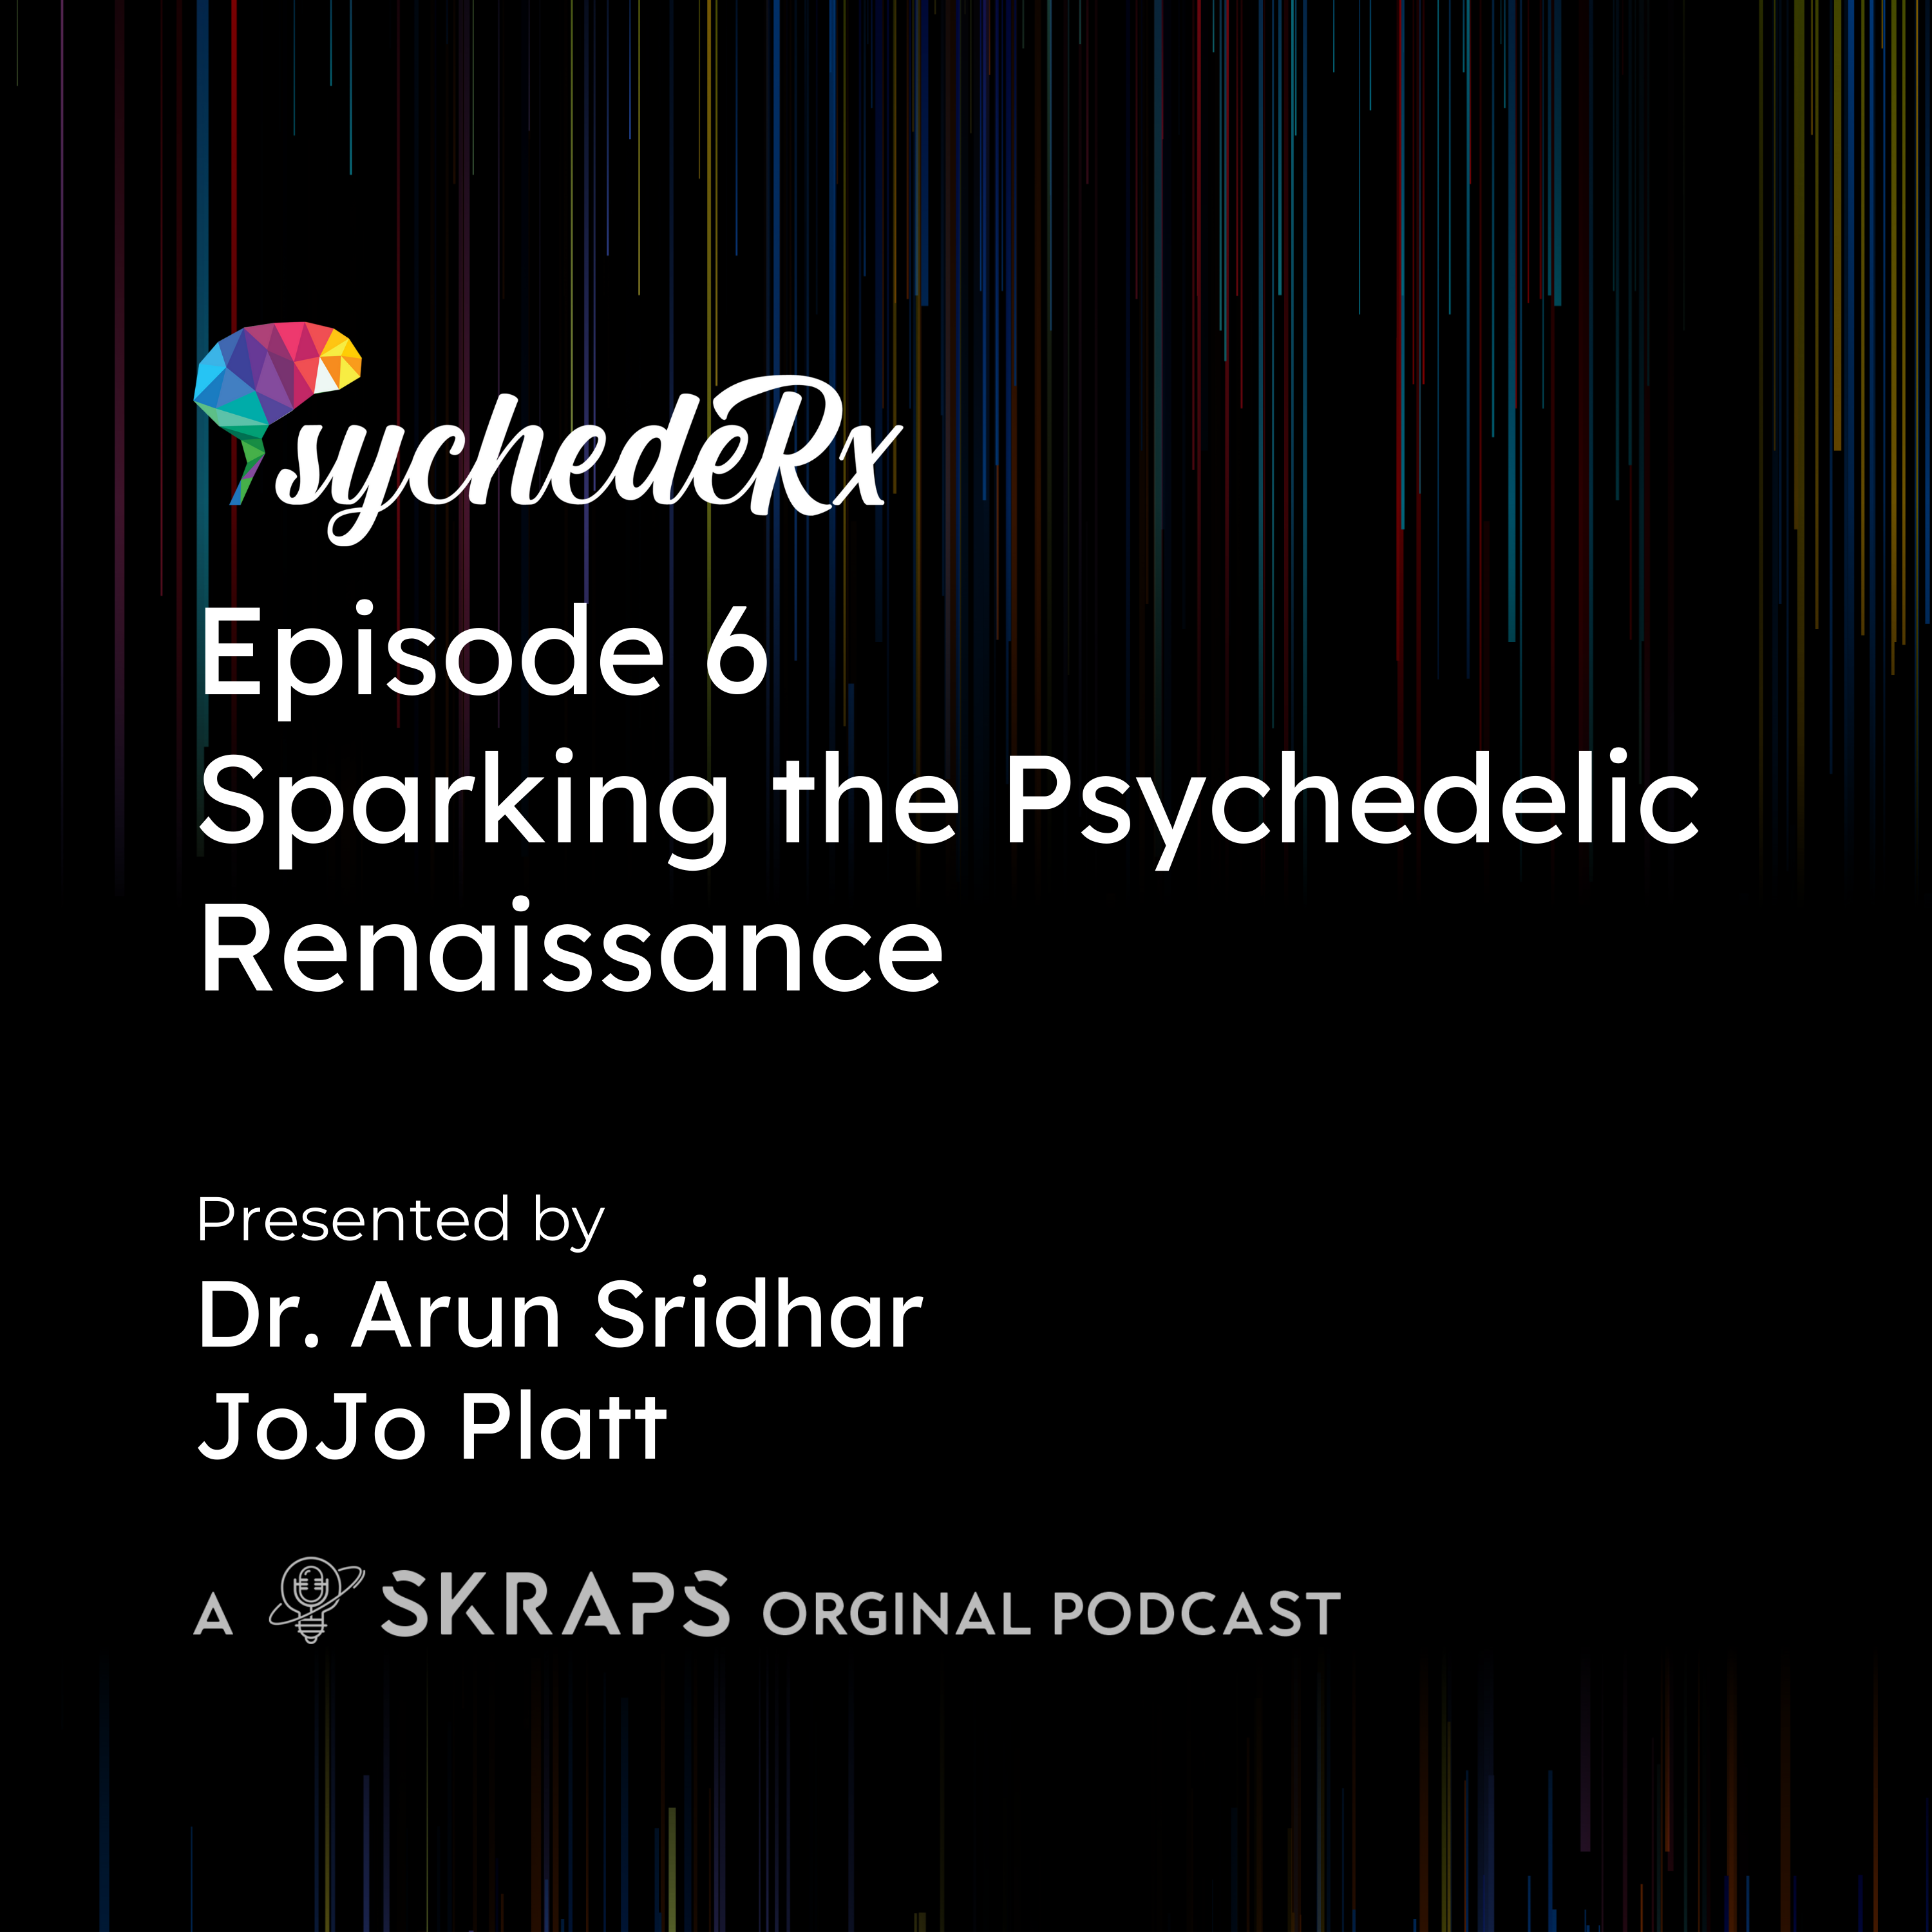 Sparking the Psychedelic Renaissance